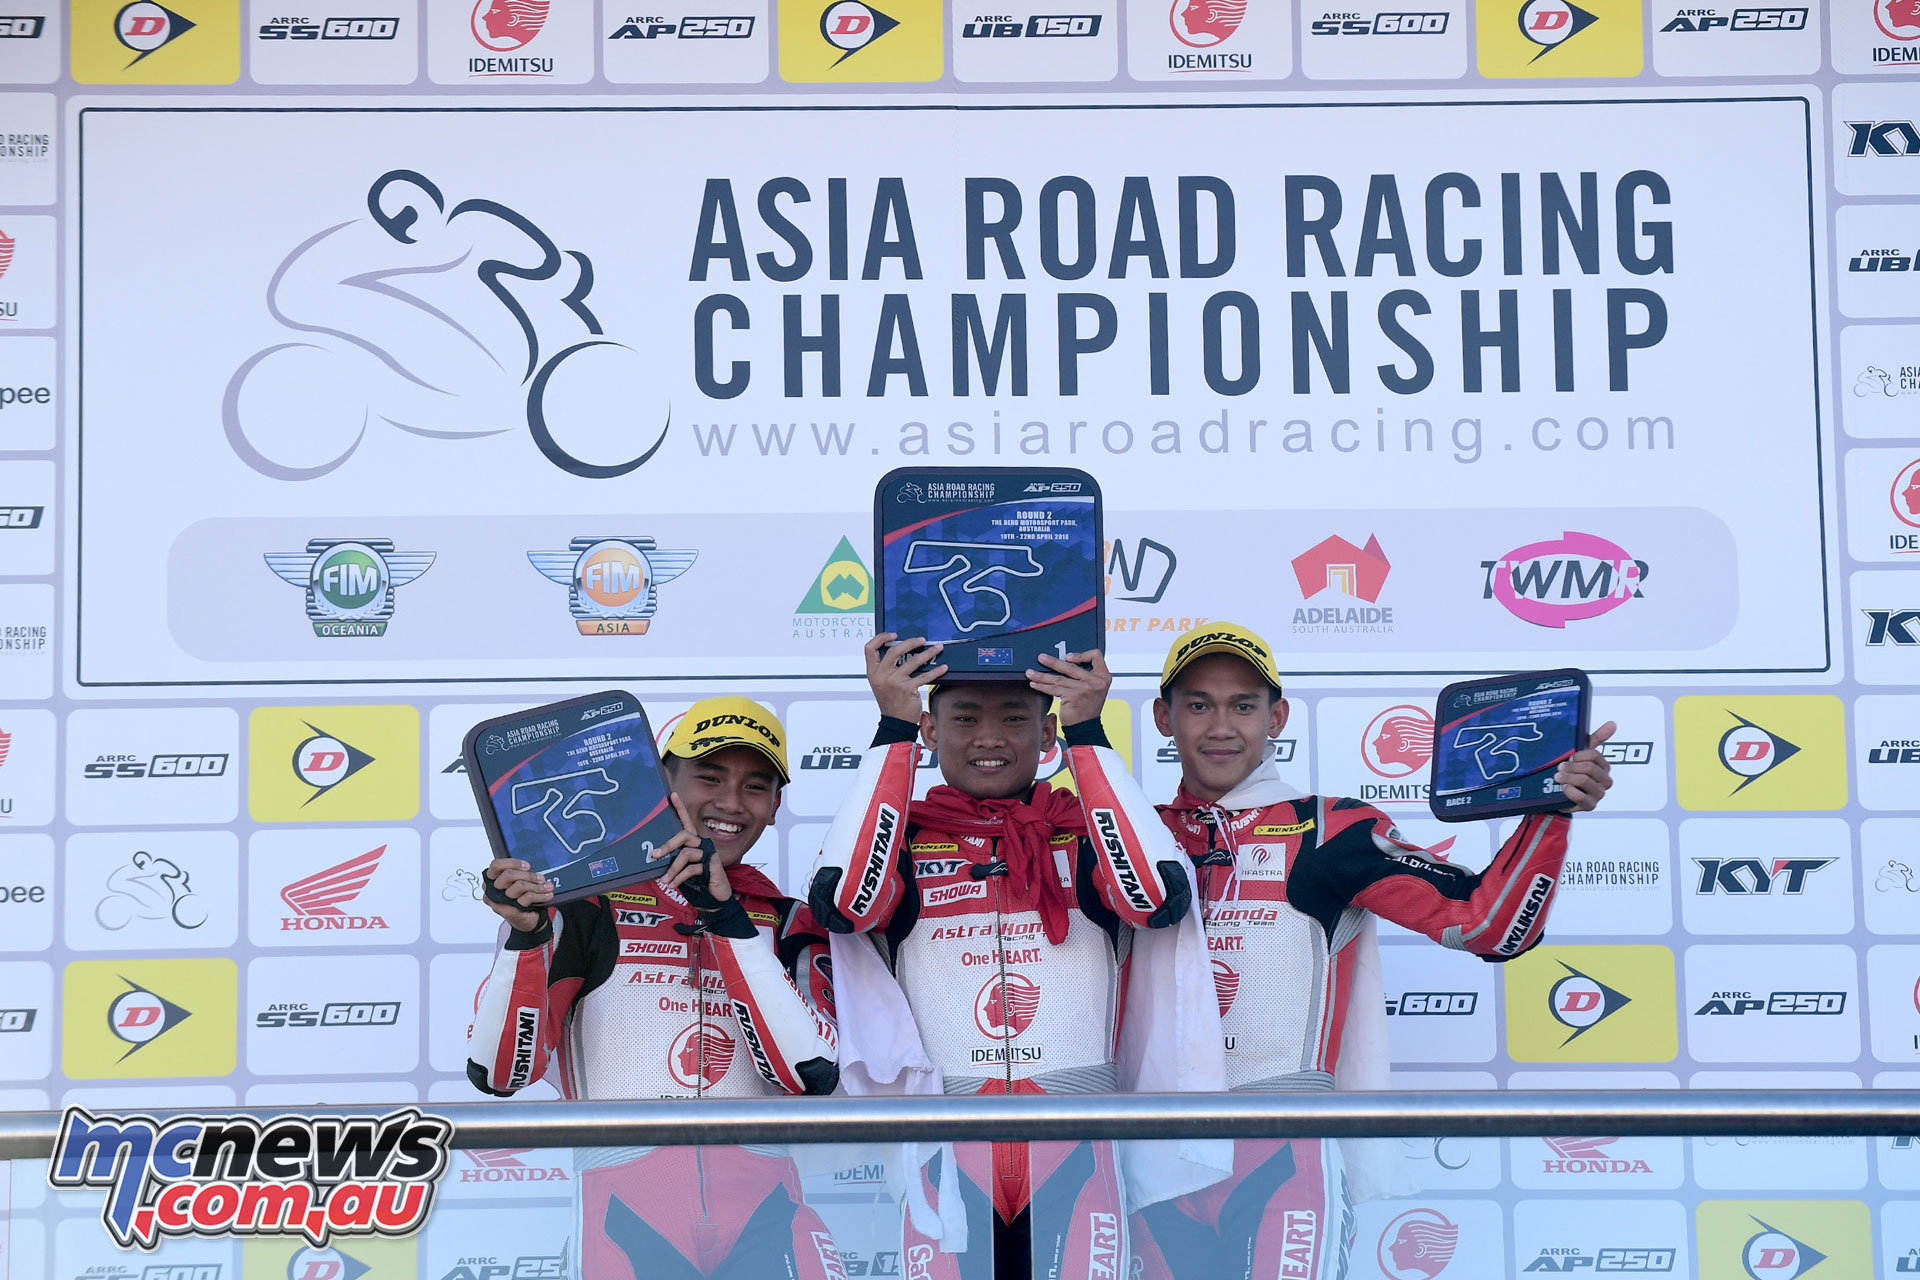 Ahrens topped the Race 2 podium from Aju and Sanjaya